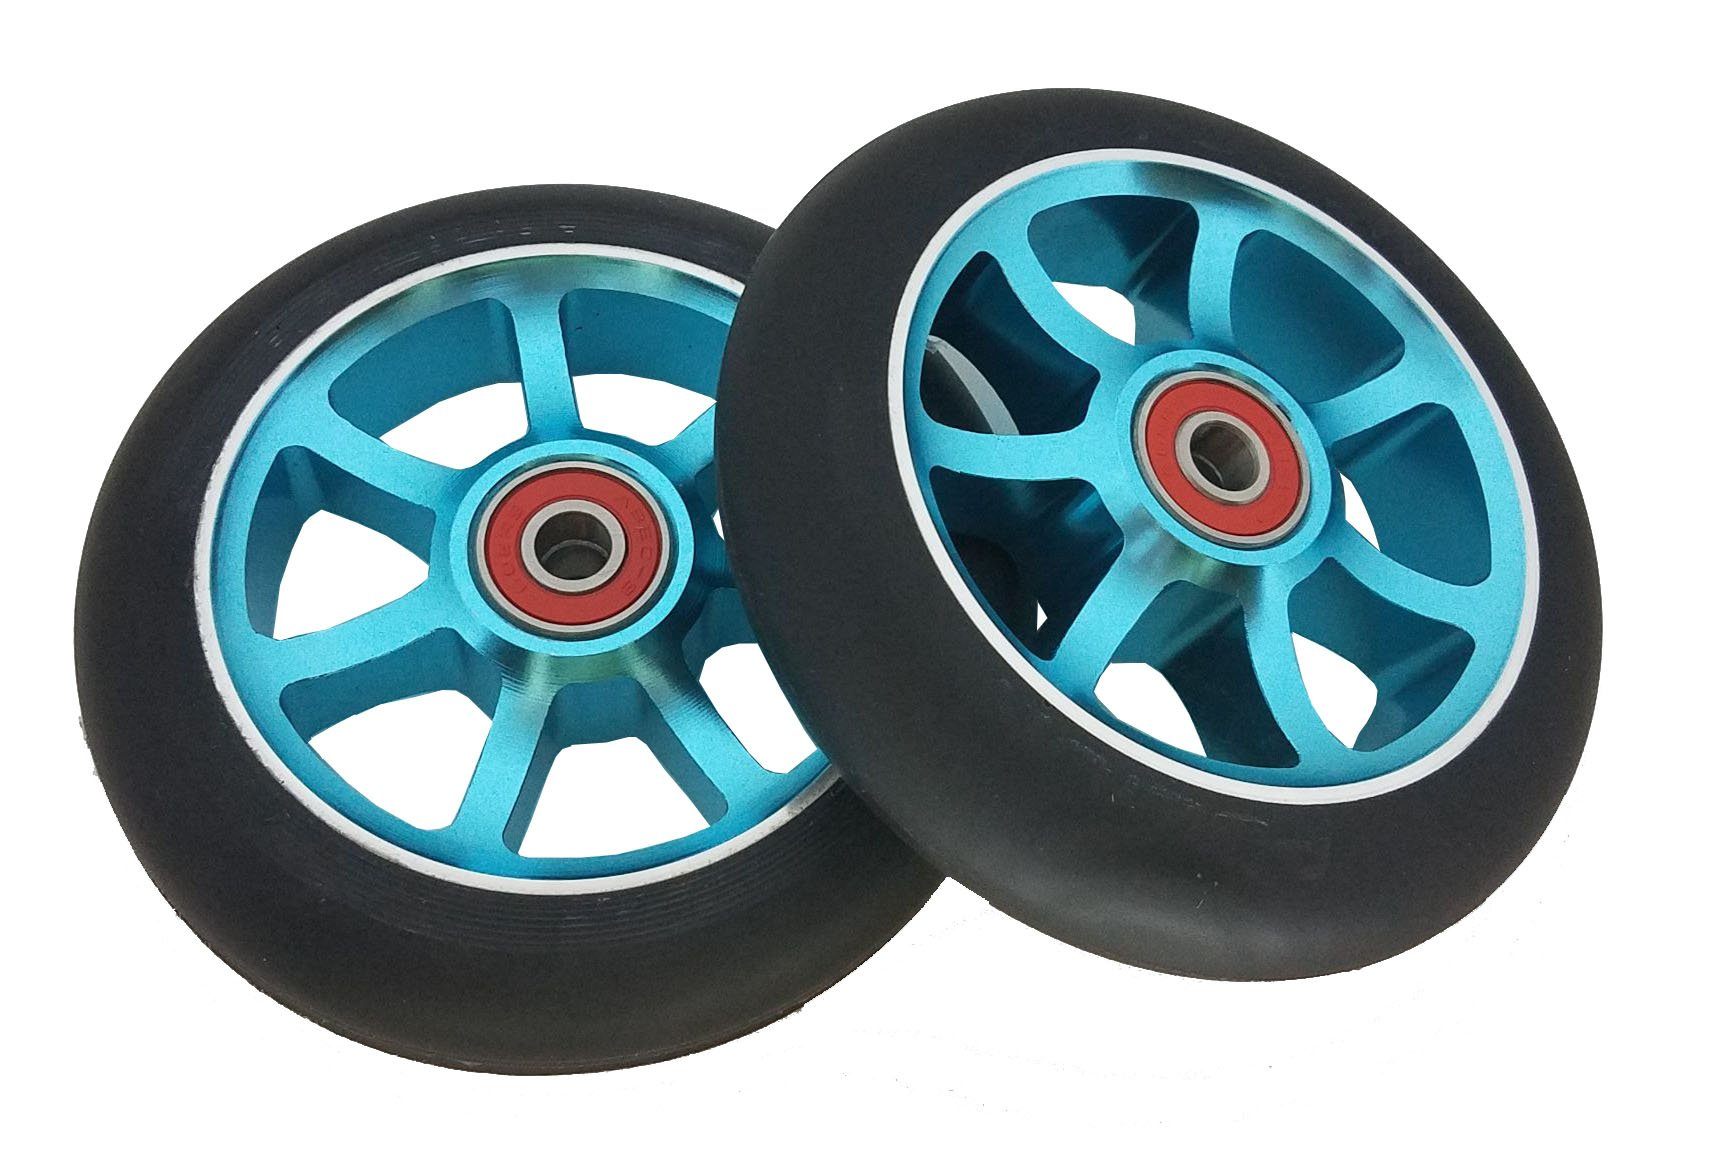 Revolution (Blue) 7 Spoke 110mm Aluminum Pro Scooter Replacement Wheels   SOLD BY PAIR   URBAN RIDERS USA